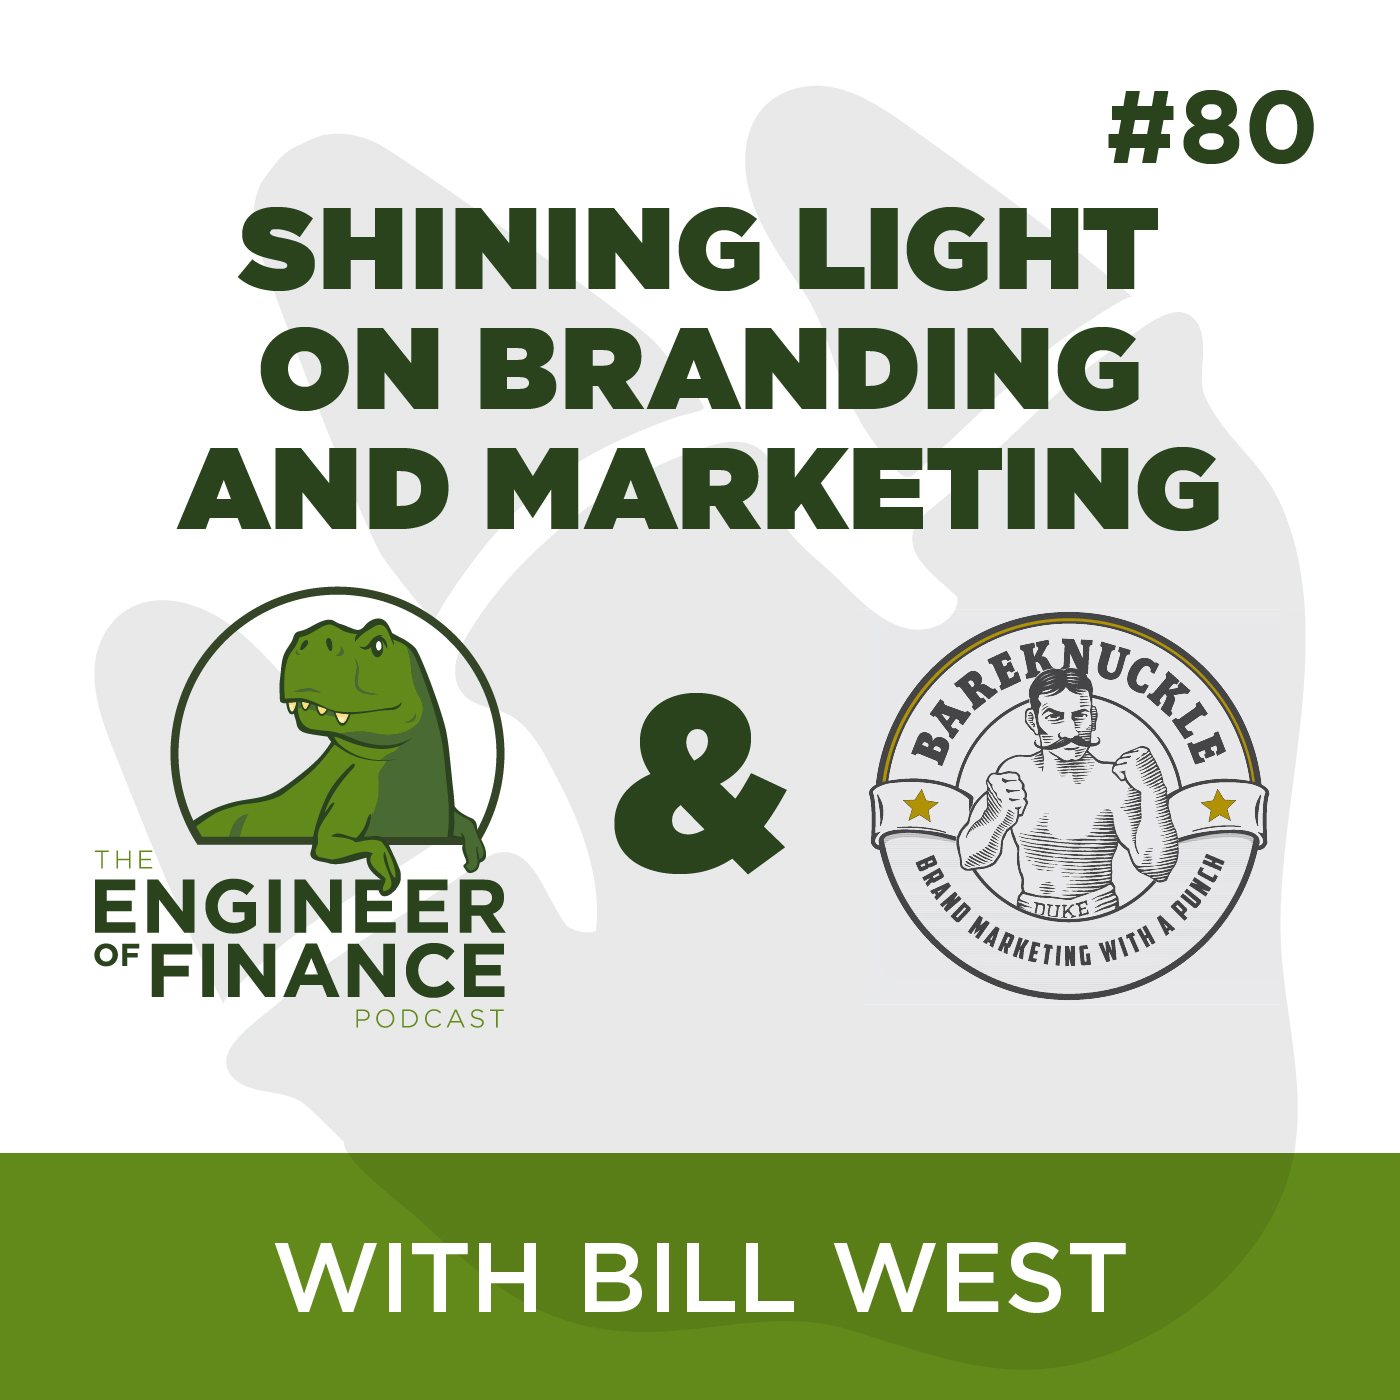 Shining Light on Branding and Marketing with Bill West – Episode 80